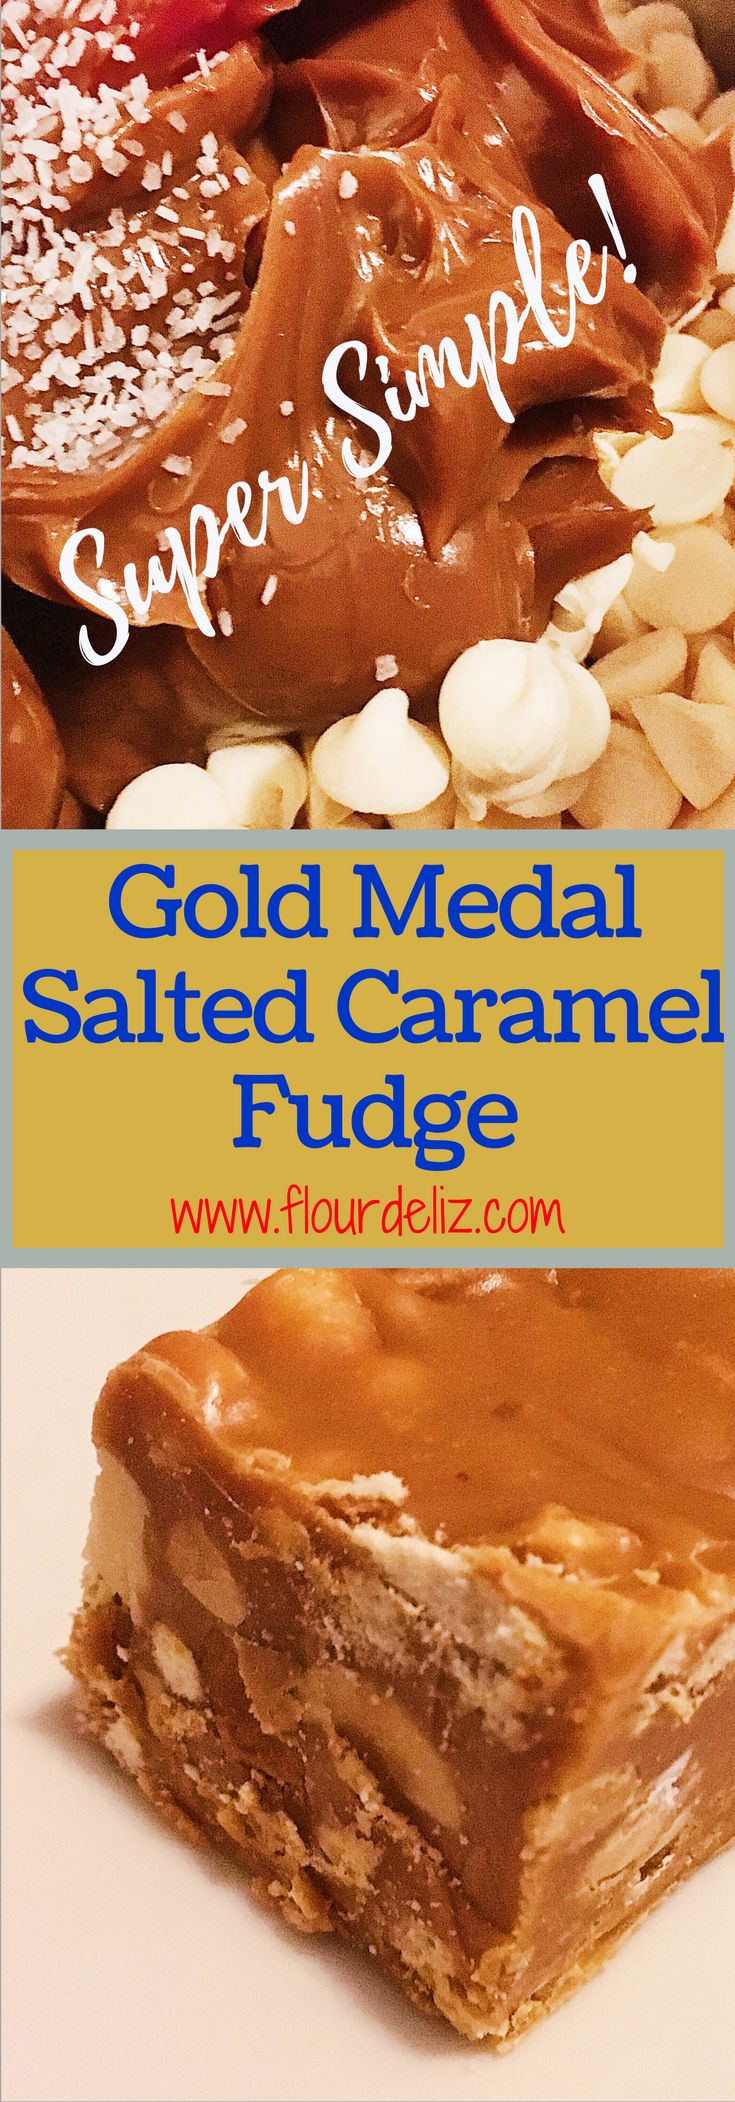 Gold Medal Salted Caramel Fudge